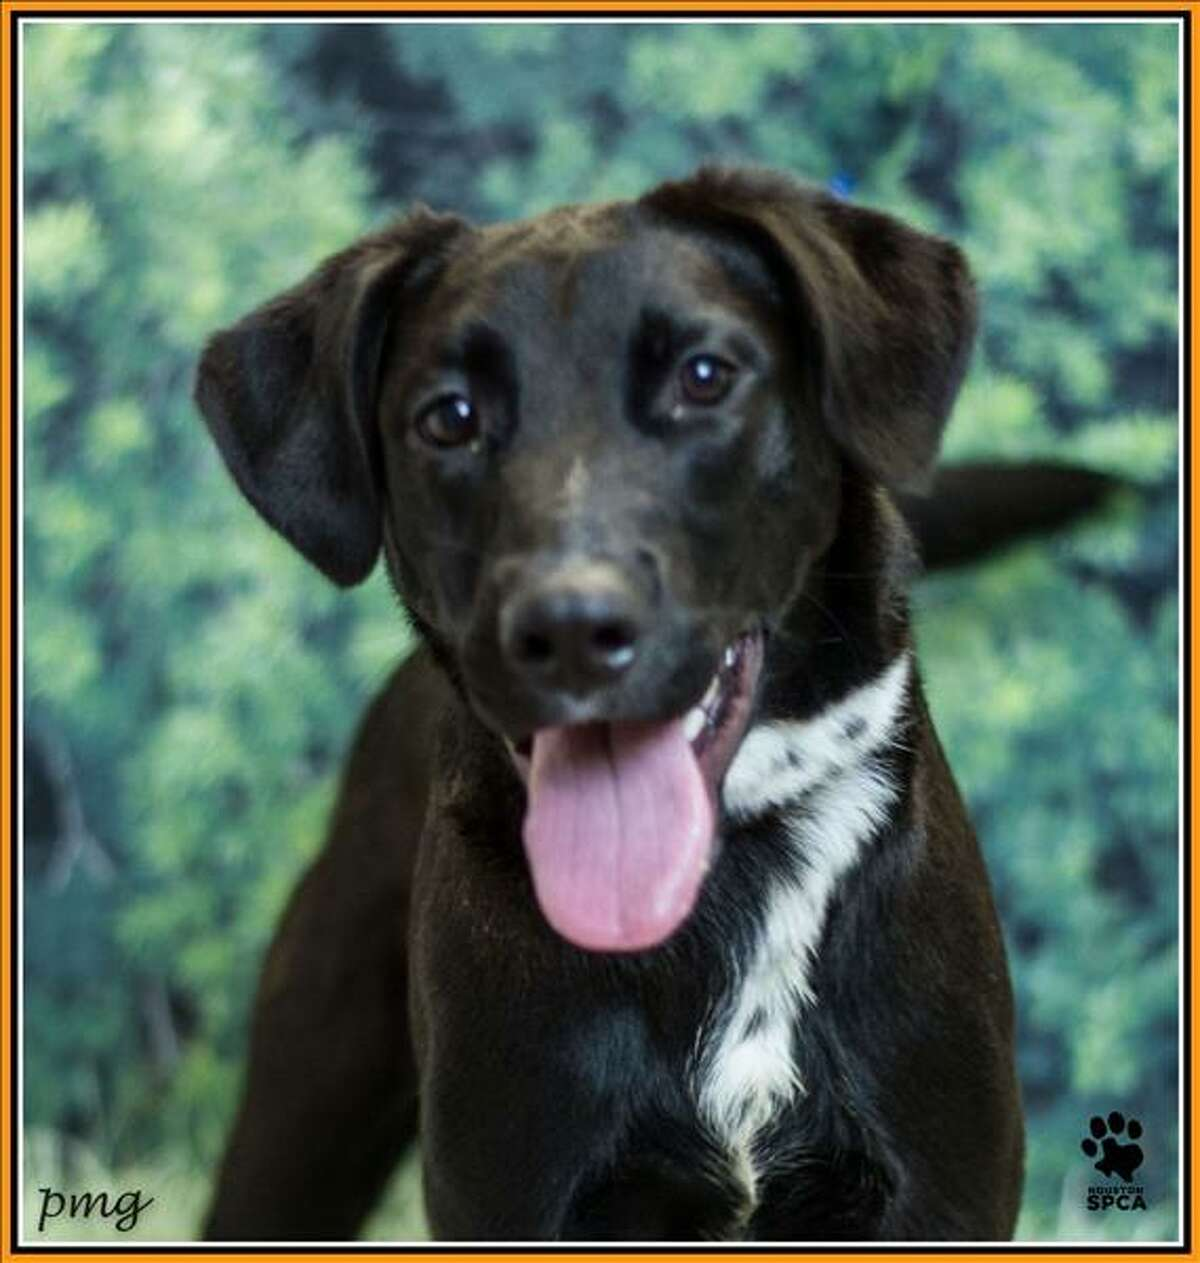 Stark is a year-old Labrador cross who is up for adoption at the Houston SPCA. He's named after Tony Stark, otherwise known as Iron Man from the Marvel comic books and movies.